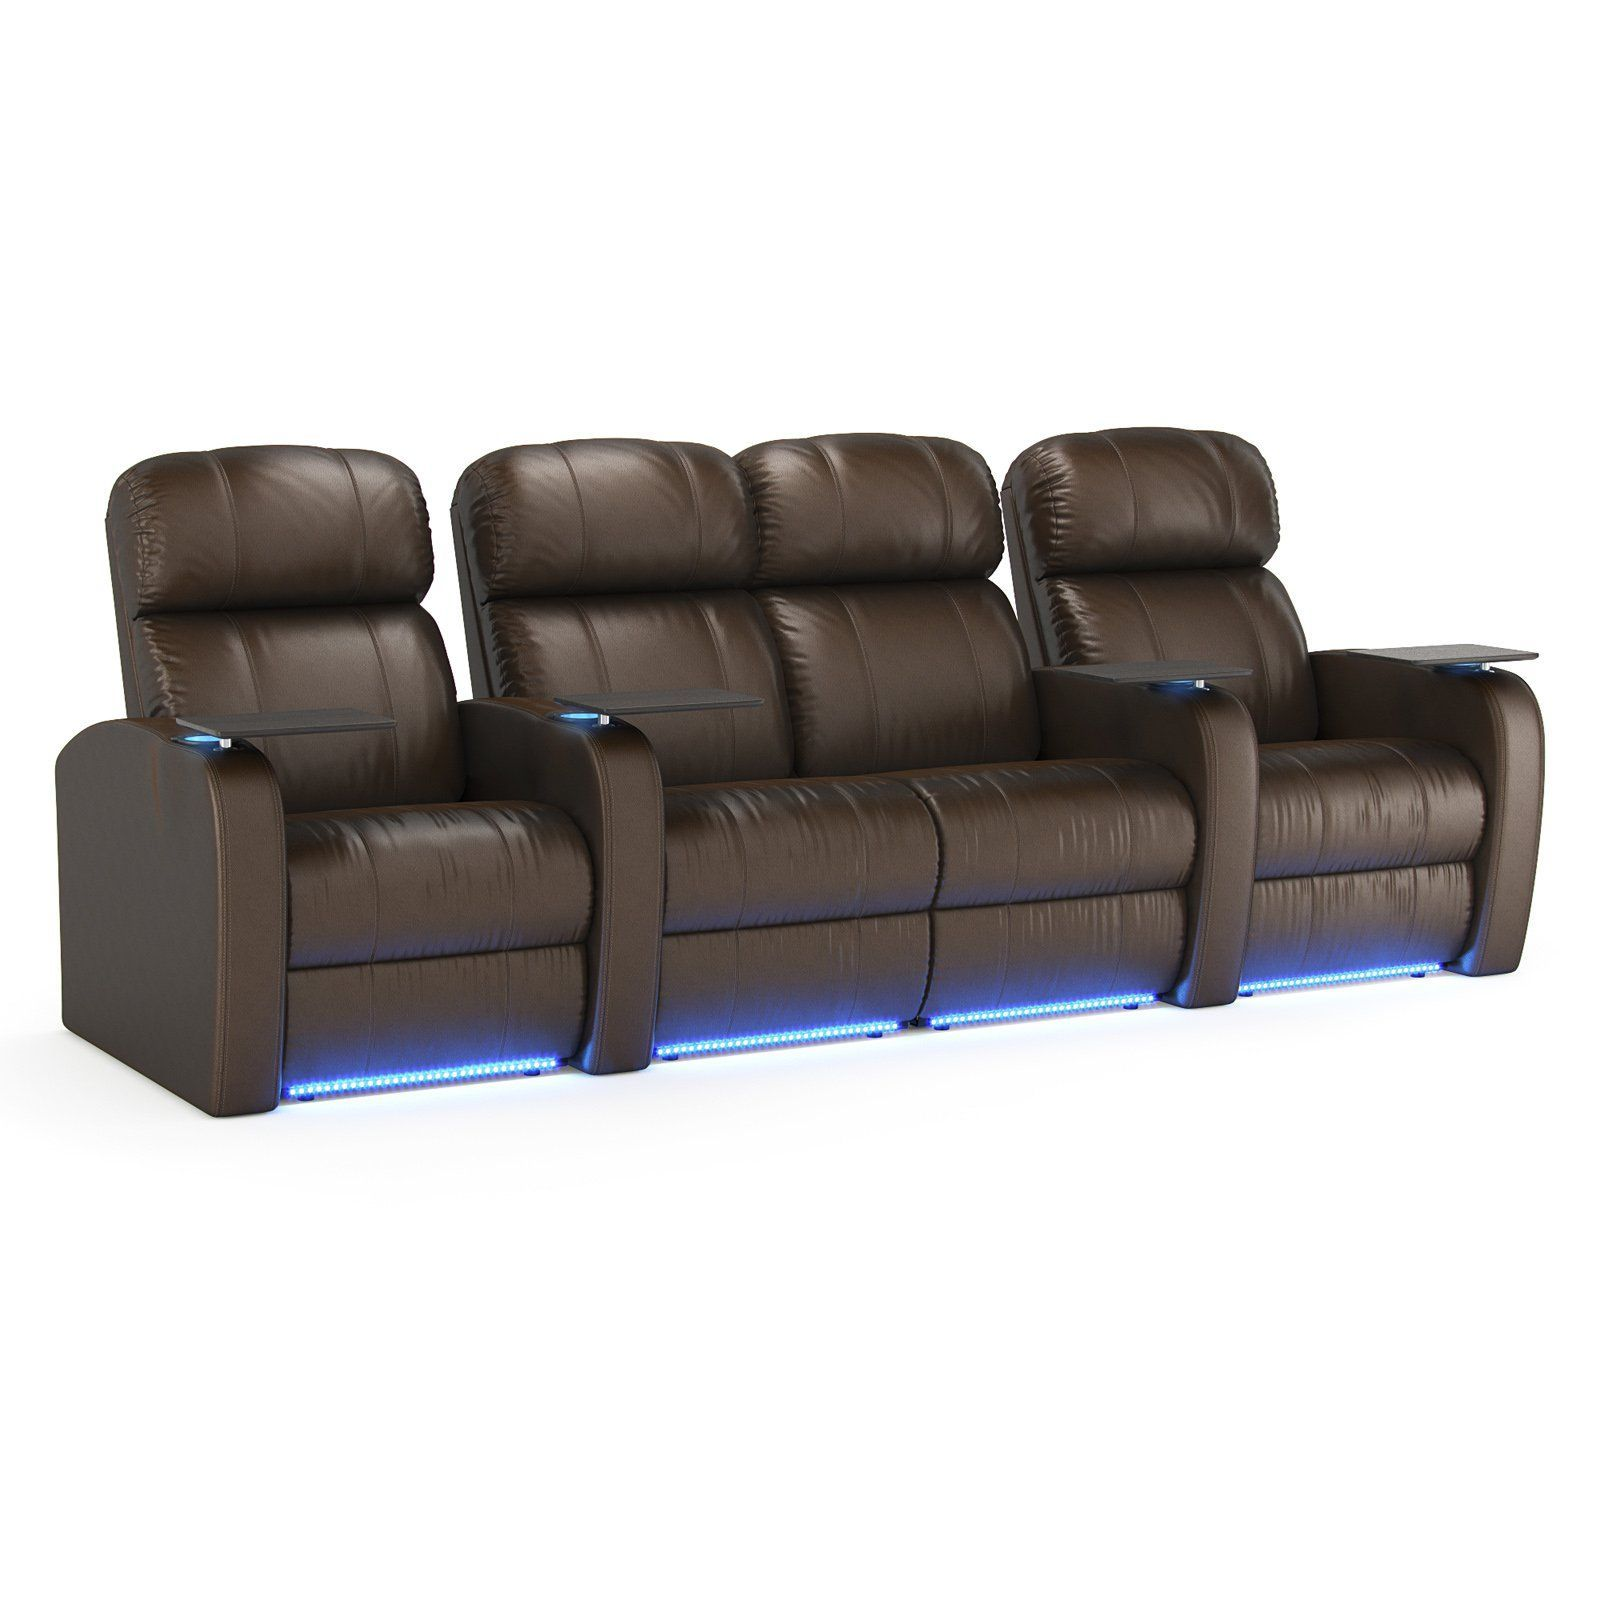 Octane Diesel Xs950 4 Seater Middle Loveseat Home Theater Seating Wiring A Room R4slp Lm Bl